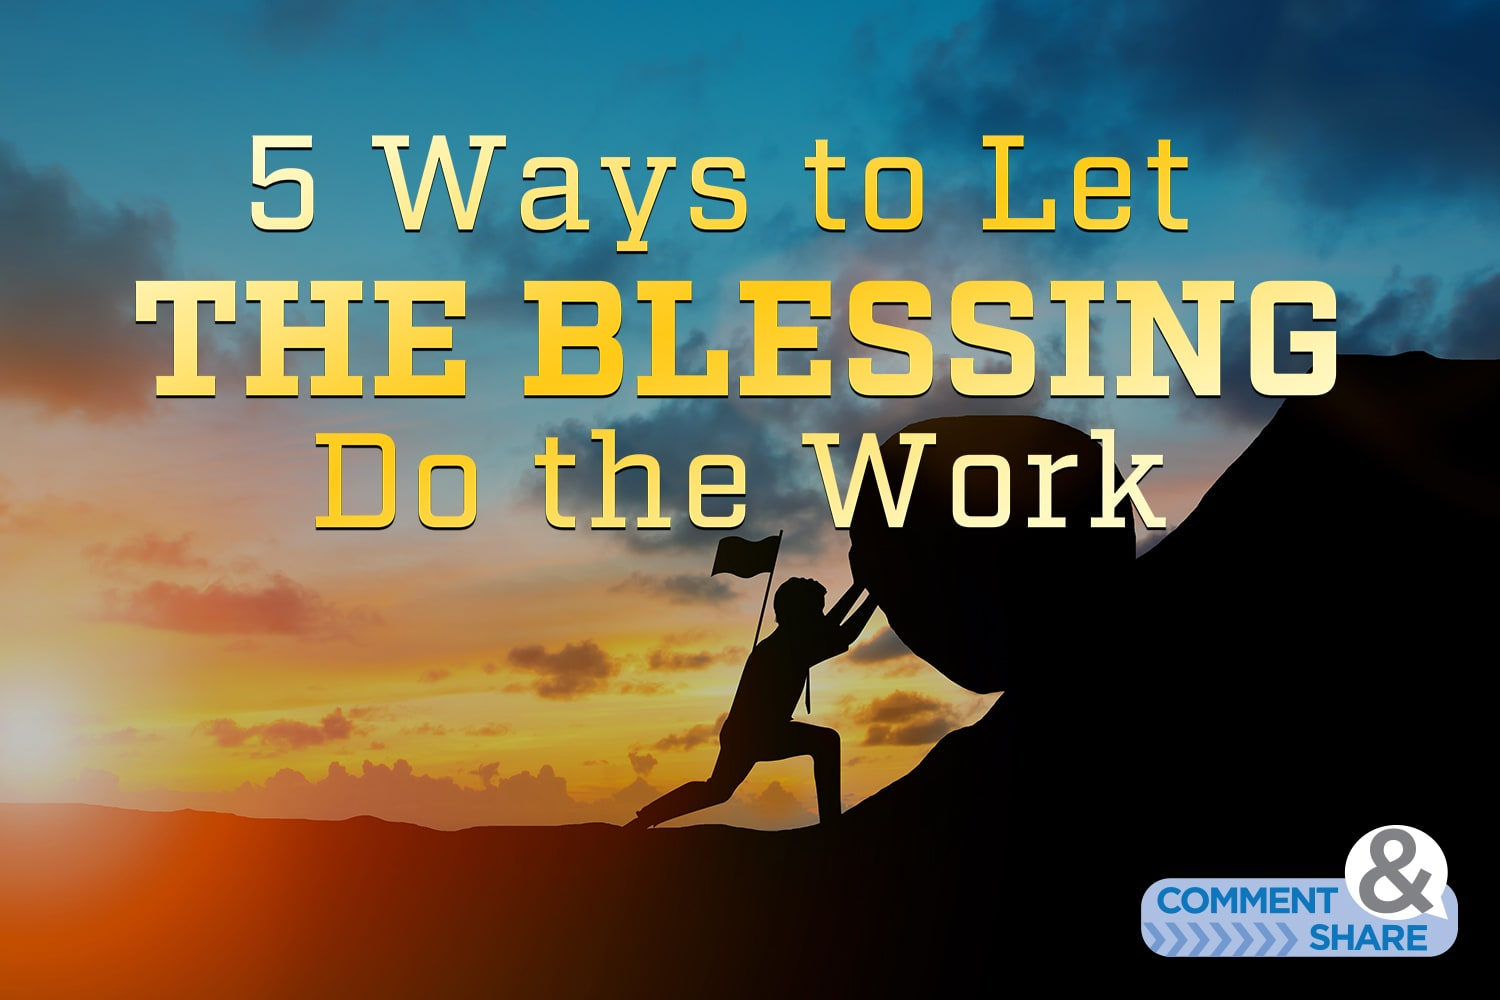 5 Ways to Let THE BLESSING Do the Work